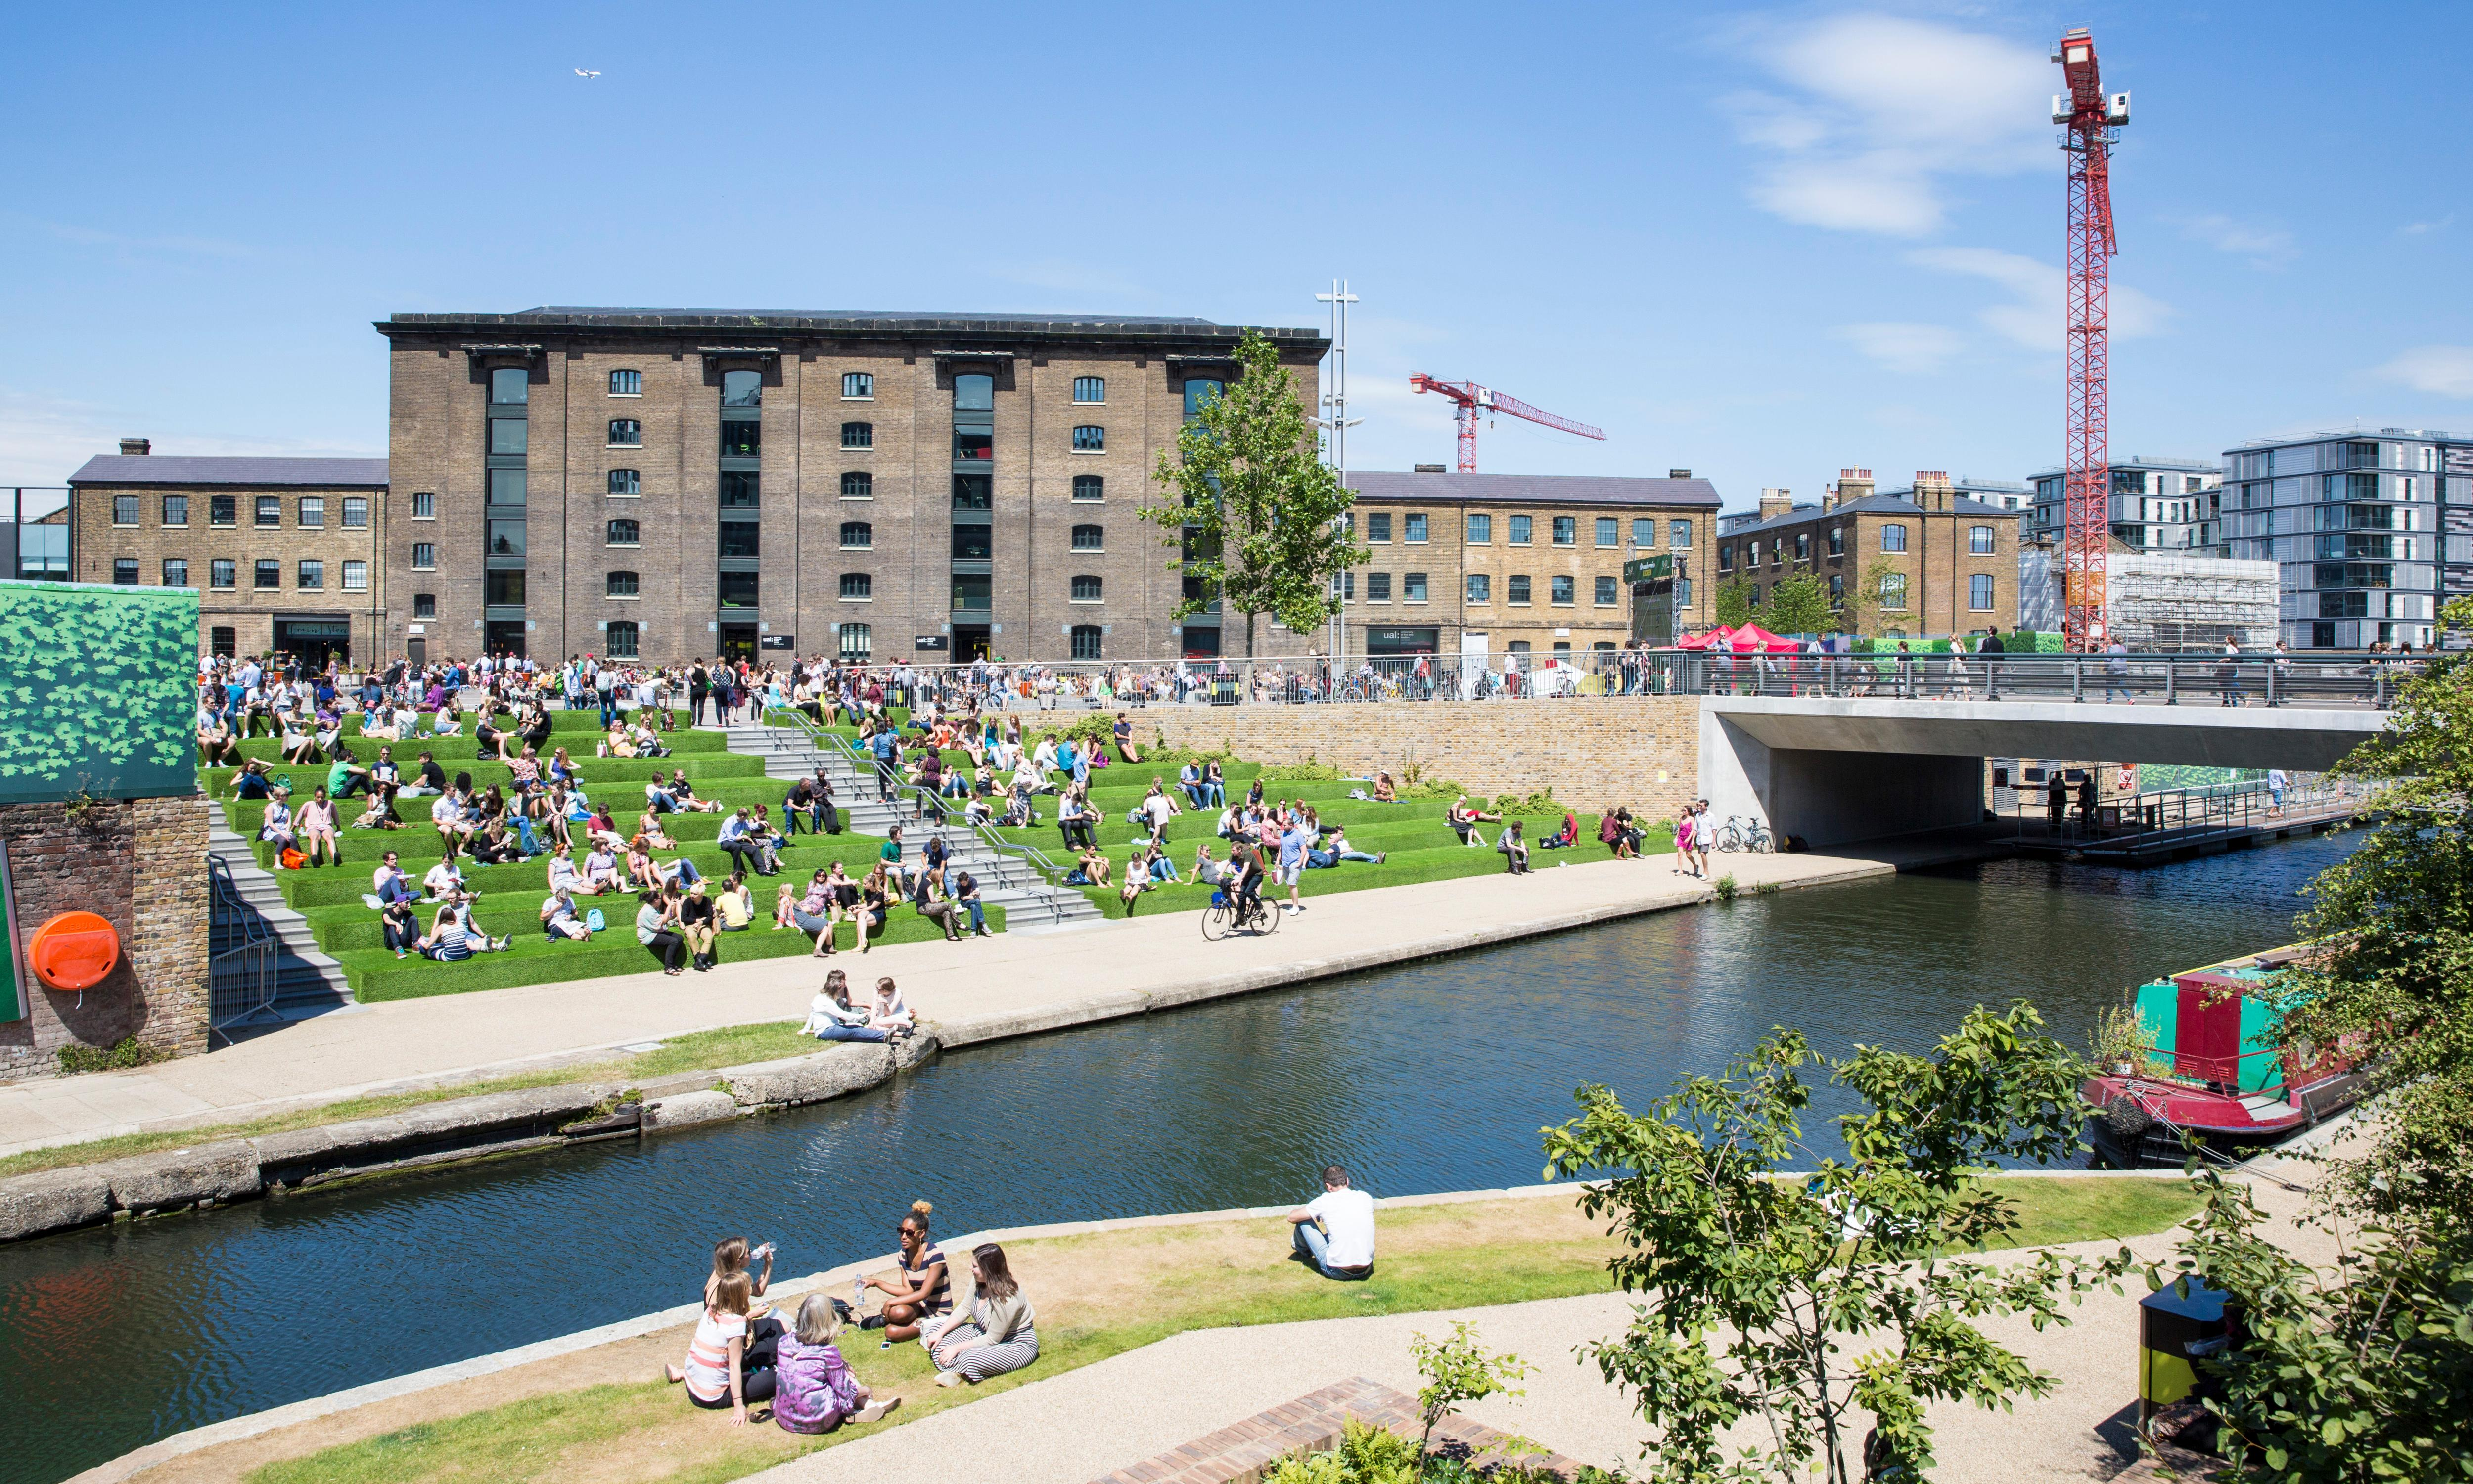 The privatisation of cities' public spaces is escalating. It is time to take a stand